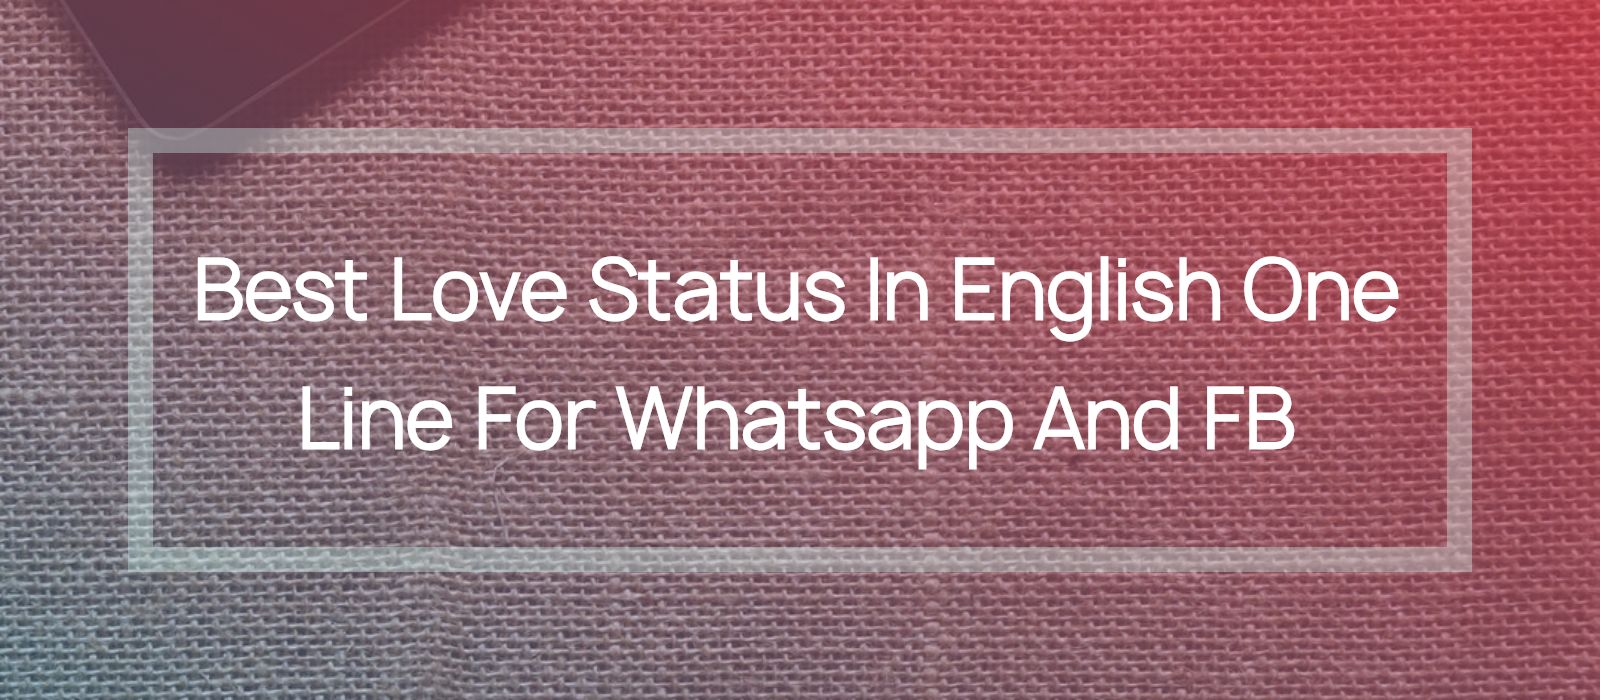 Love Status In English One Line For Whatsapp Latest 2019